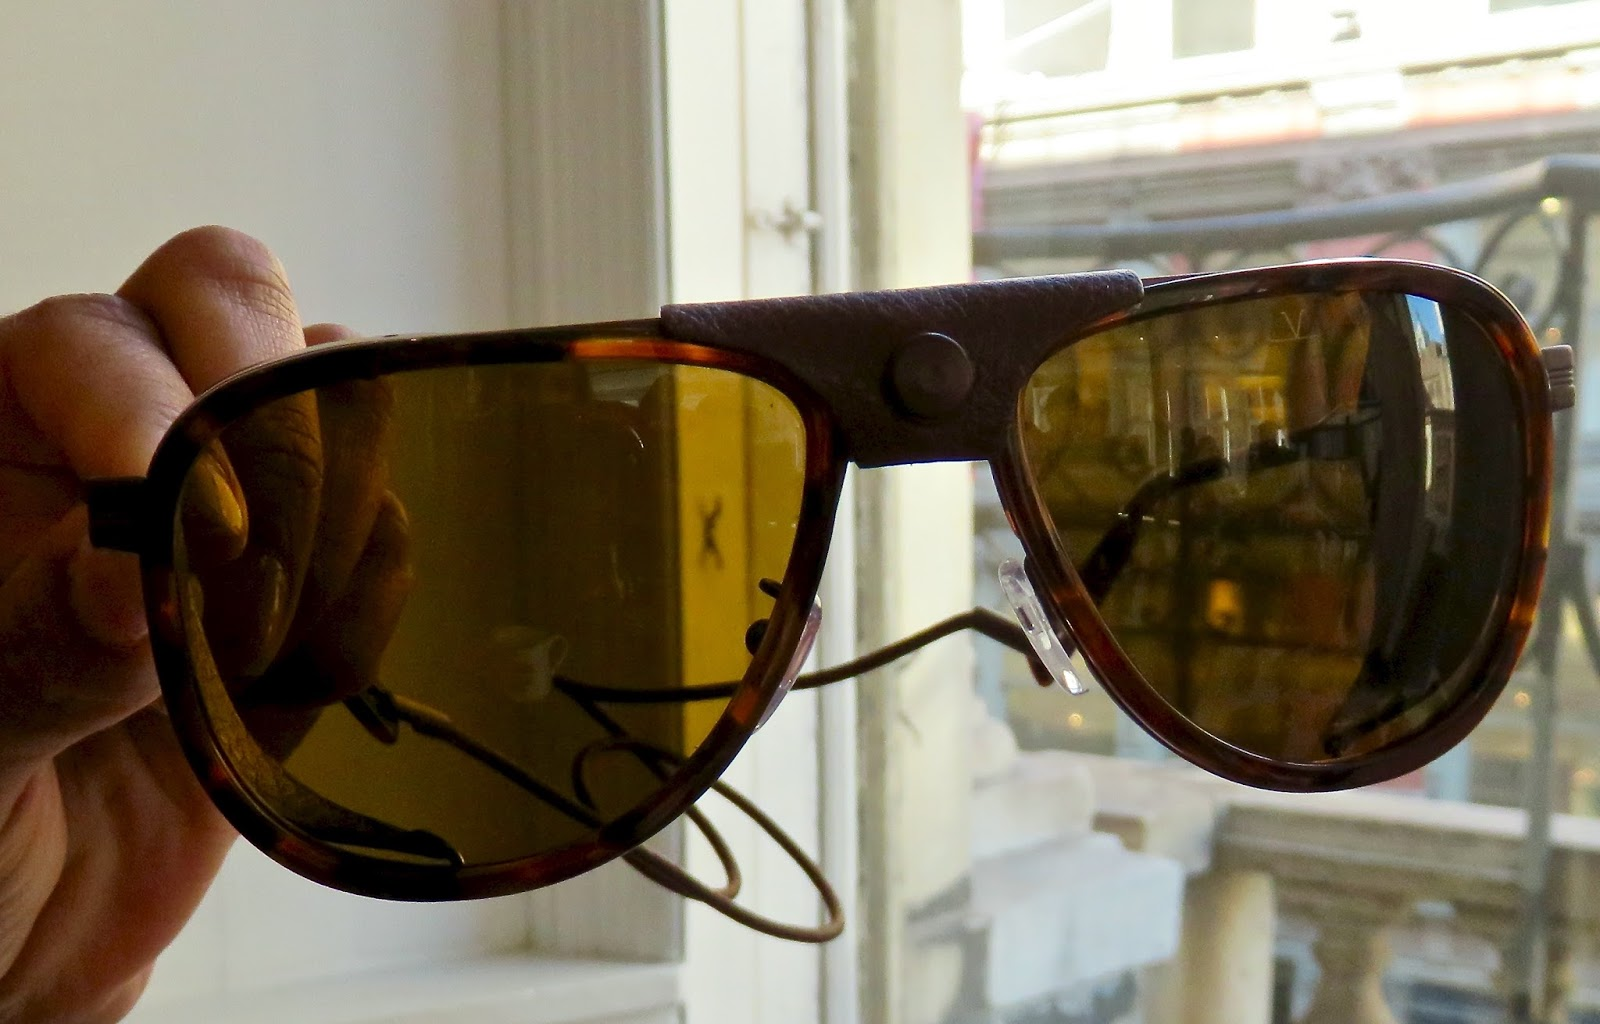 Glasses Frames With Removable Arms : LYRA MAG.: SUNGLASSES-Outdoor Urban Style for Hangout or ...